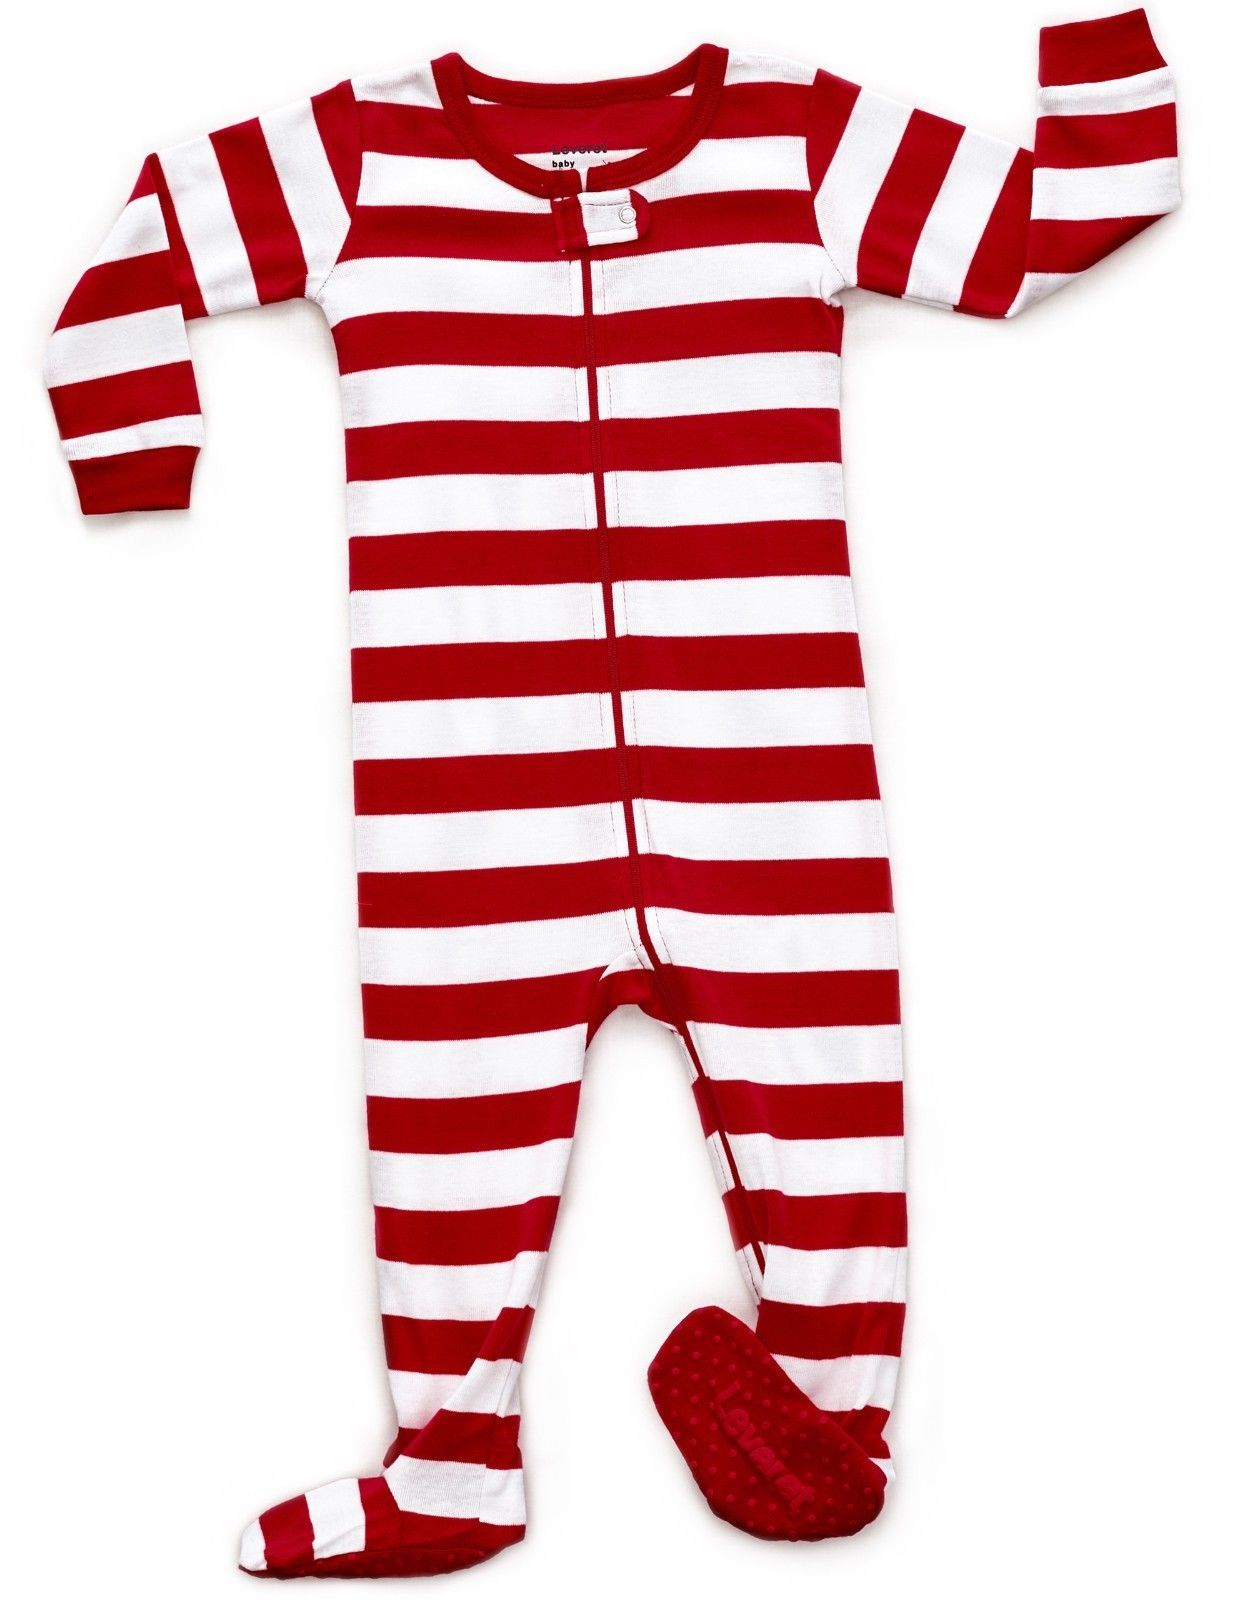 62301237e Sleepwear 163400  Leveret Baby Boys Girls Christmas Red And White ...